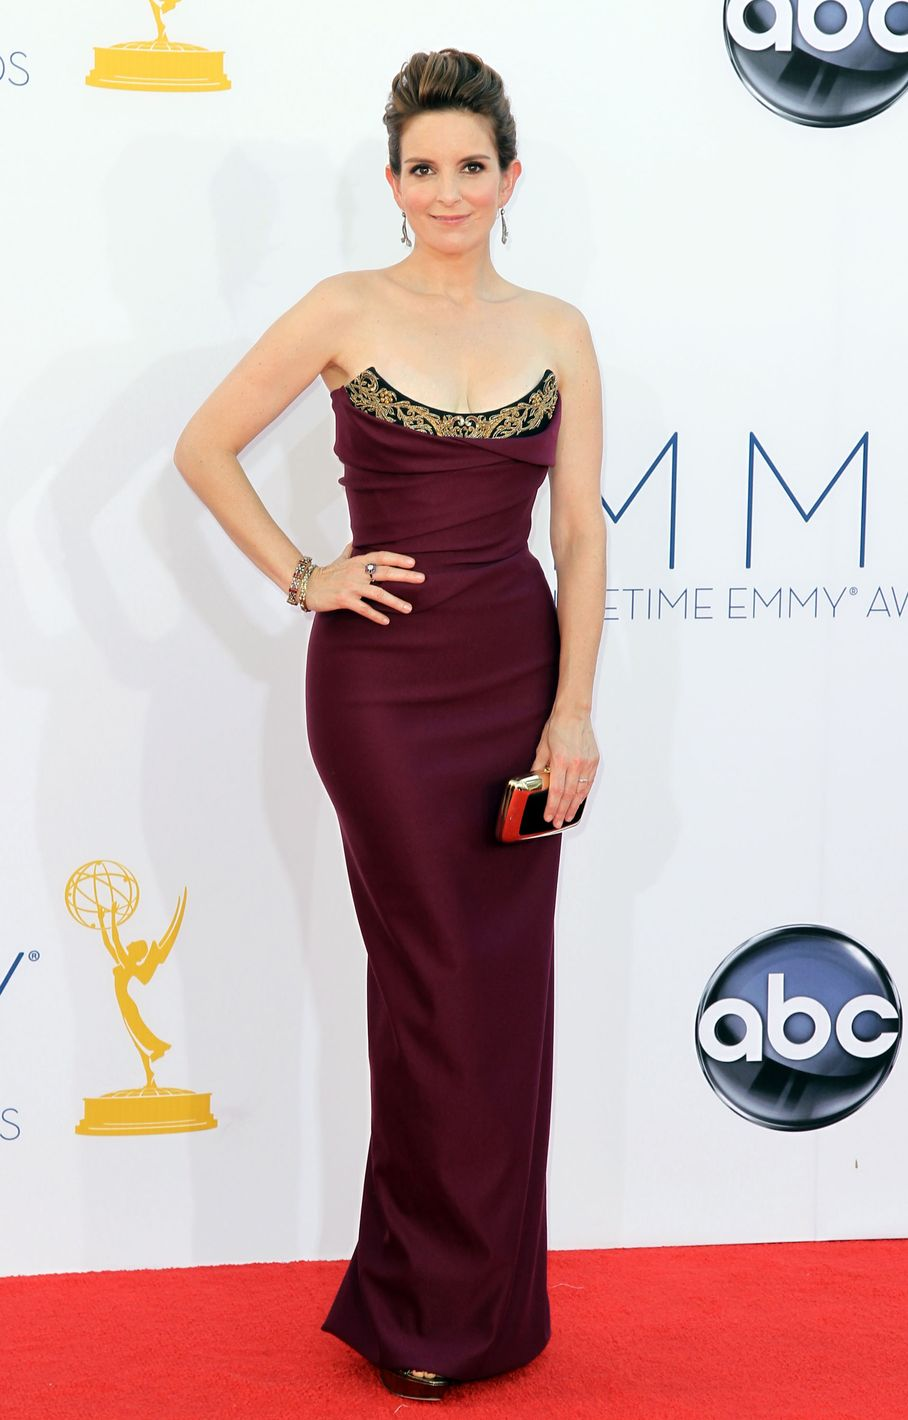 Tina Fey - 2012 Emmy Awards, Red Carpet Looks